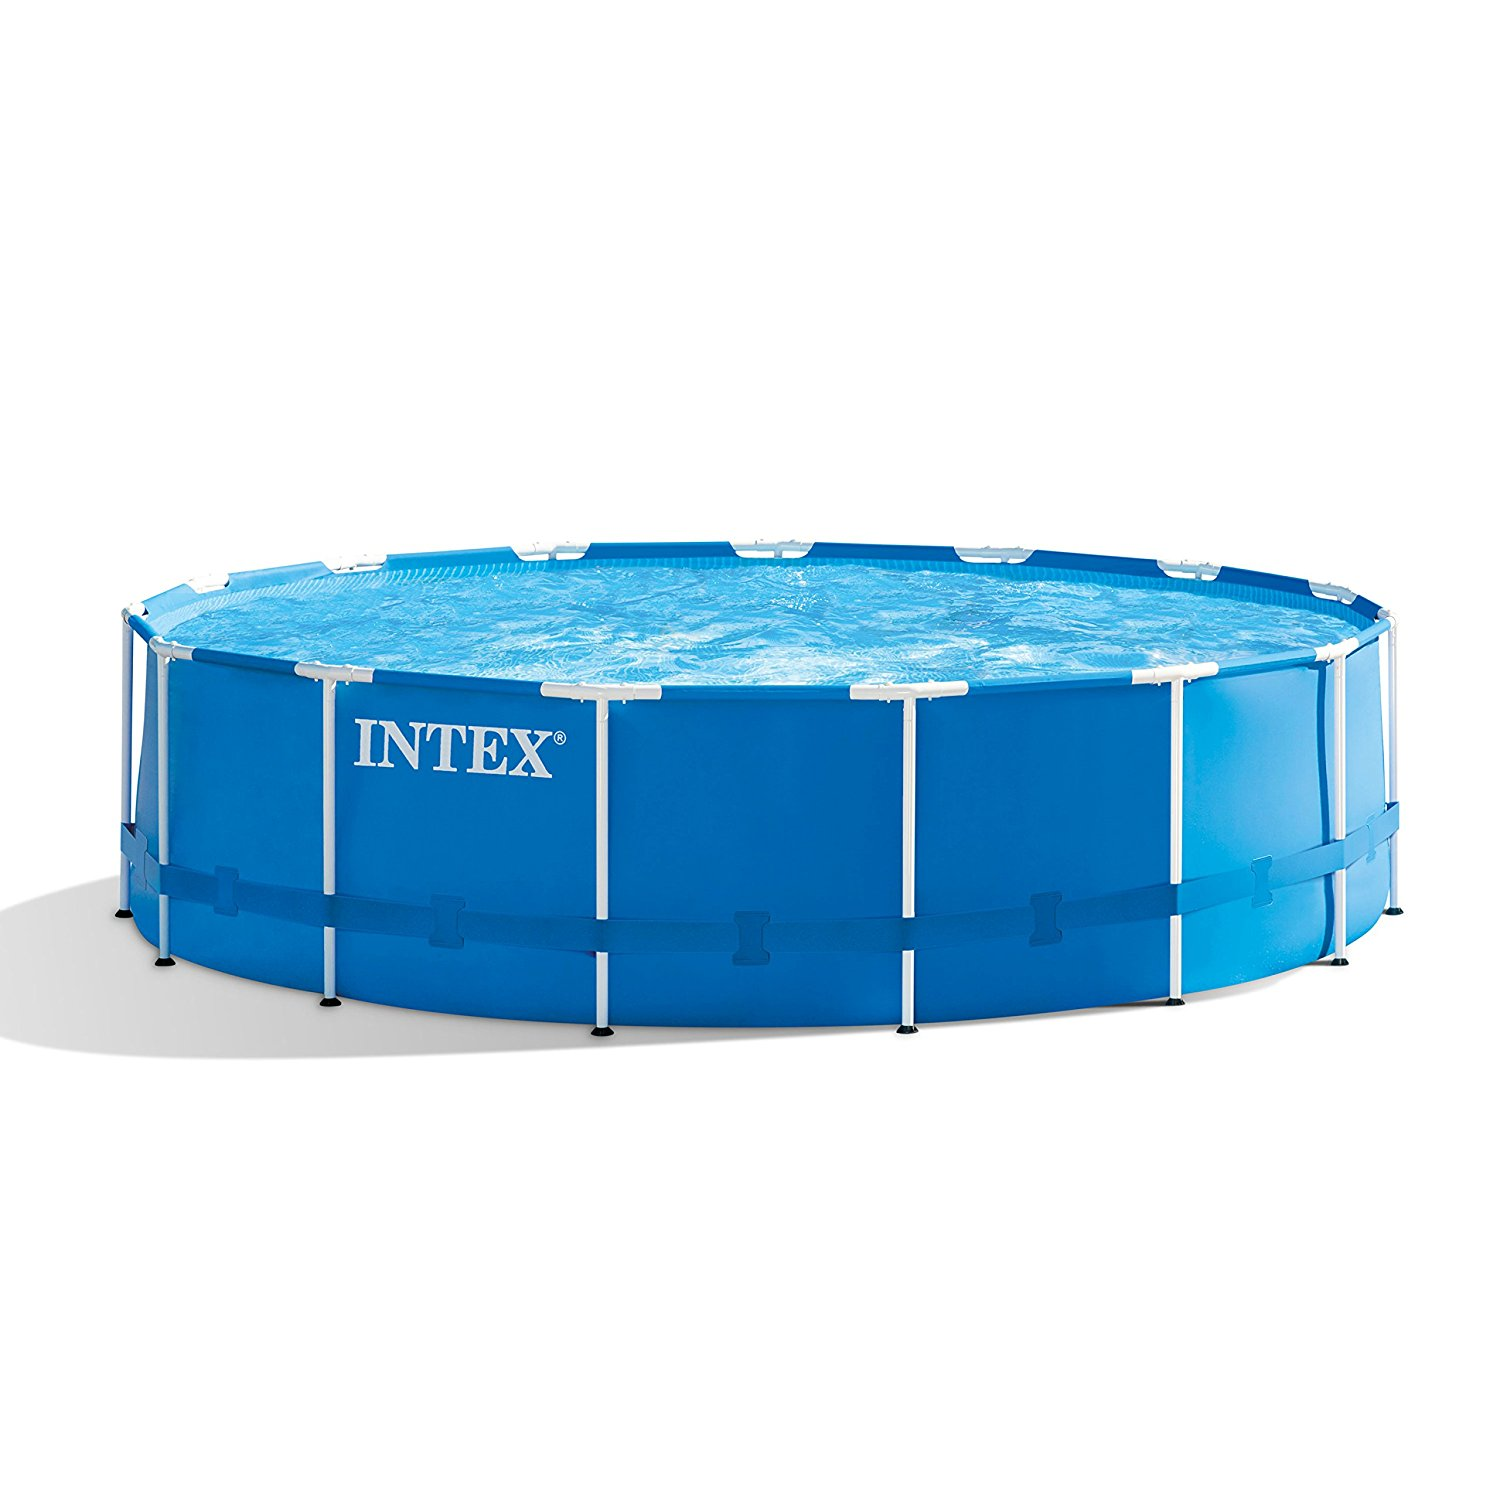 Intex 28241EH 15ft X 48in Metal Frame Pool Set with Filter Pump, Ladder, Ground Cloth & Pool